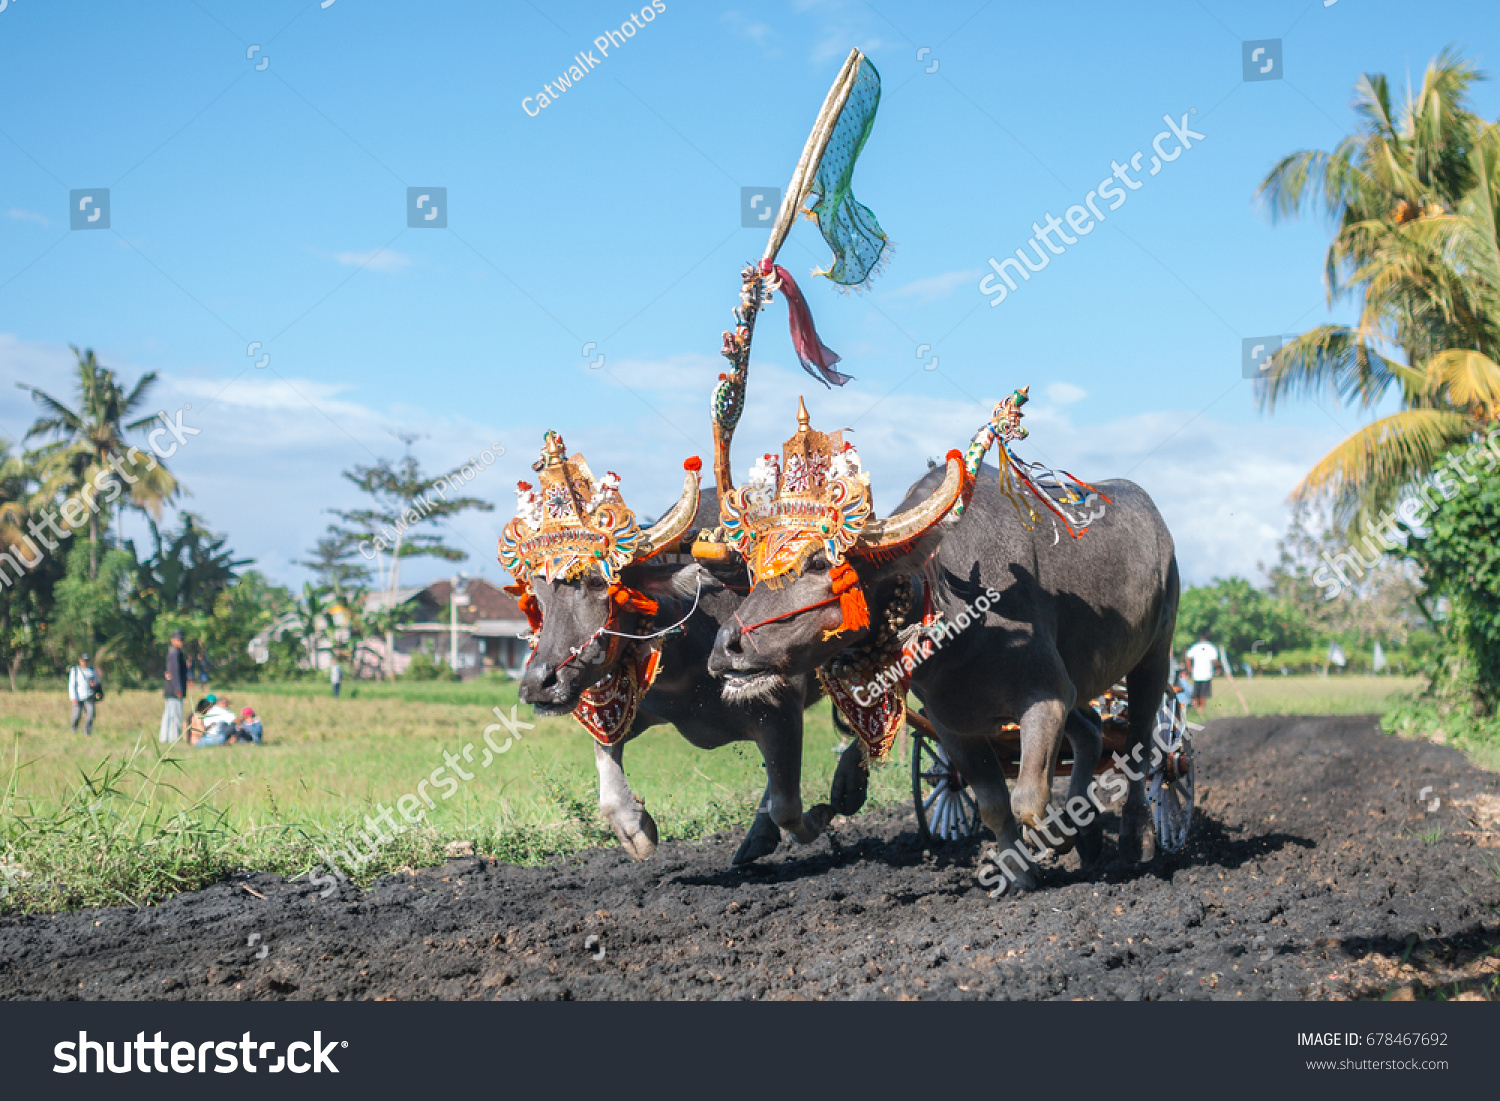 Traditional Bull Racing in Indonesia 29